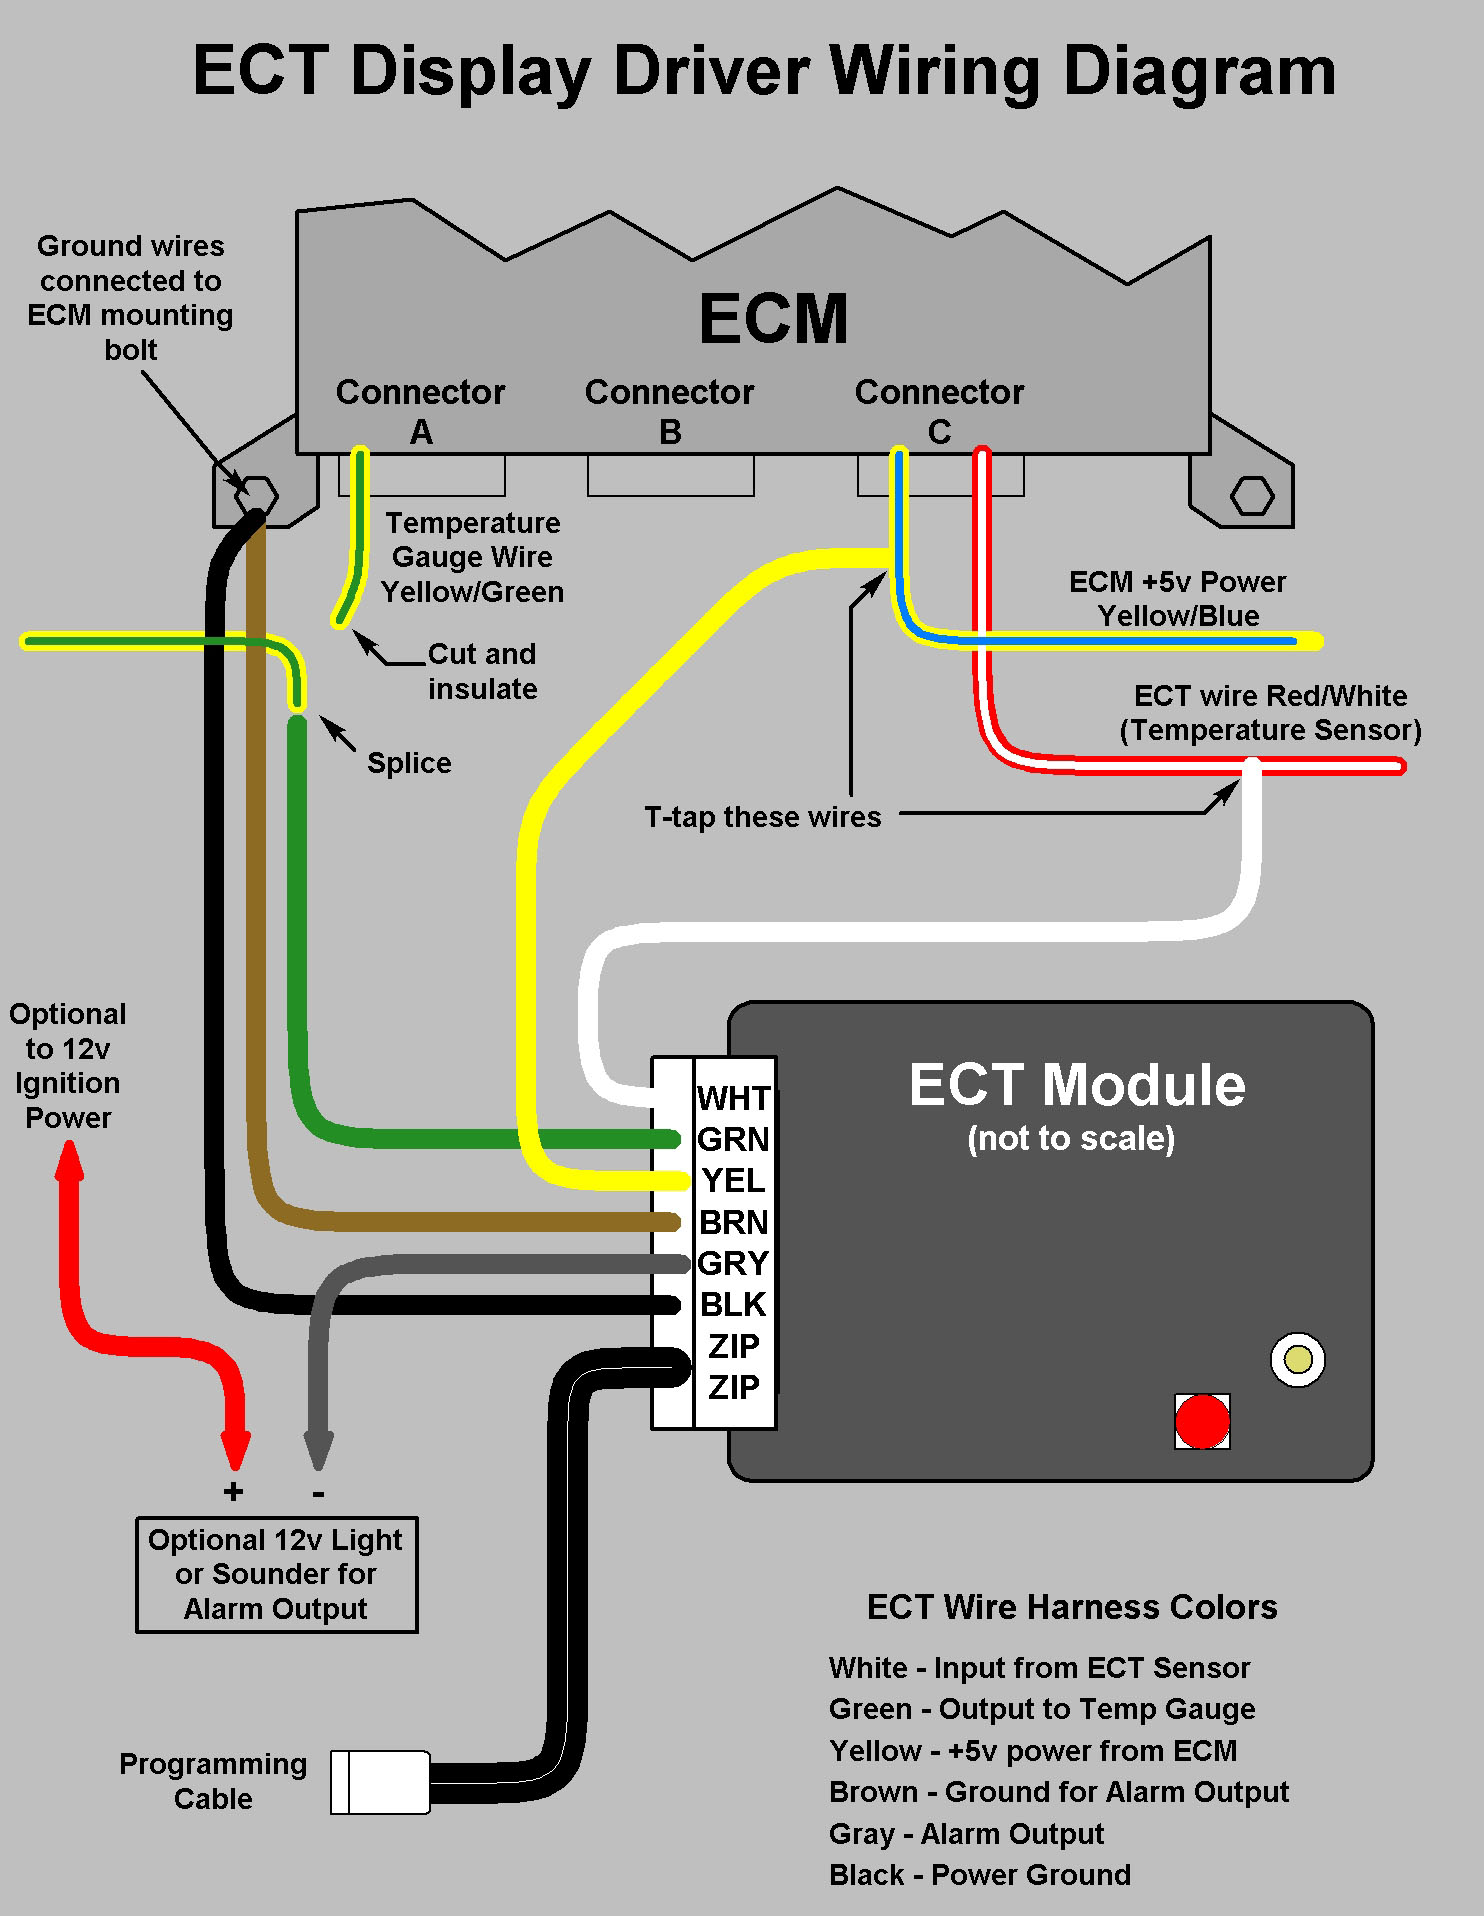 ecm wiring diagram ecm image wiring diagram ecm wiring diagram ecm auto wiring diagram schematic on ecm wiring diagram